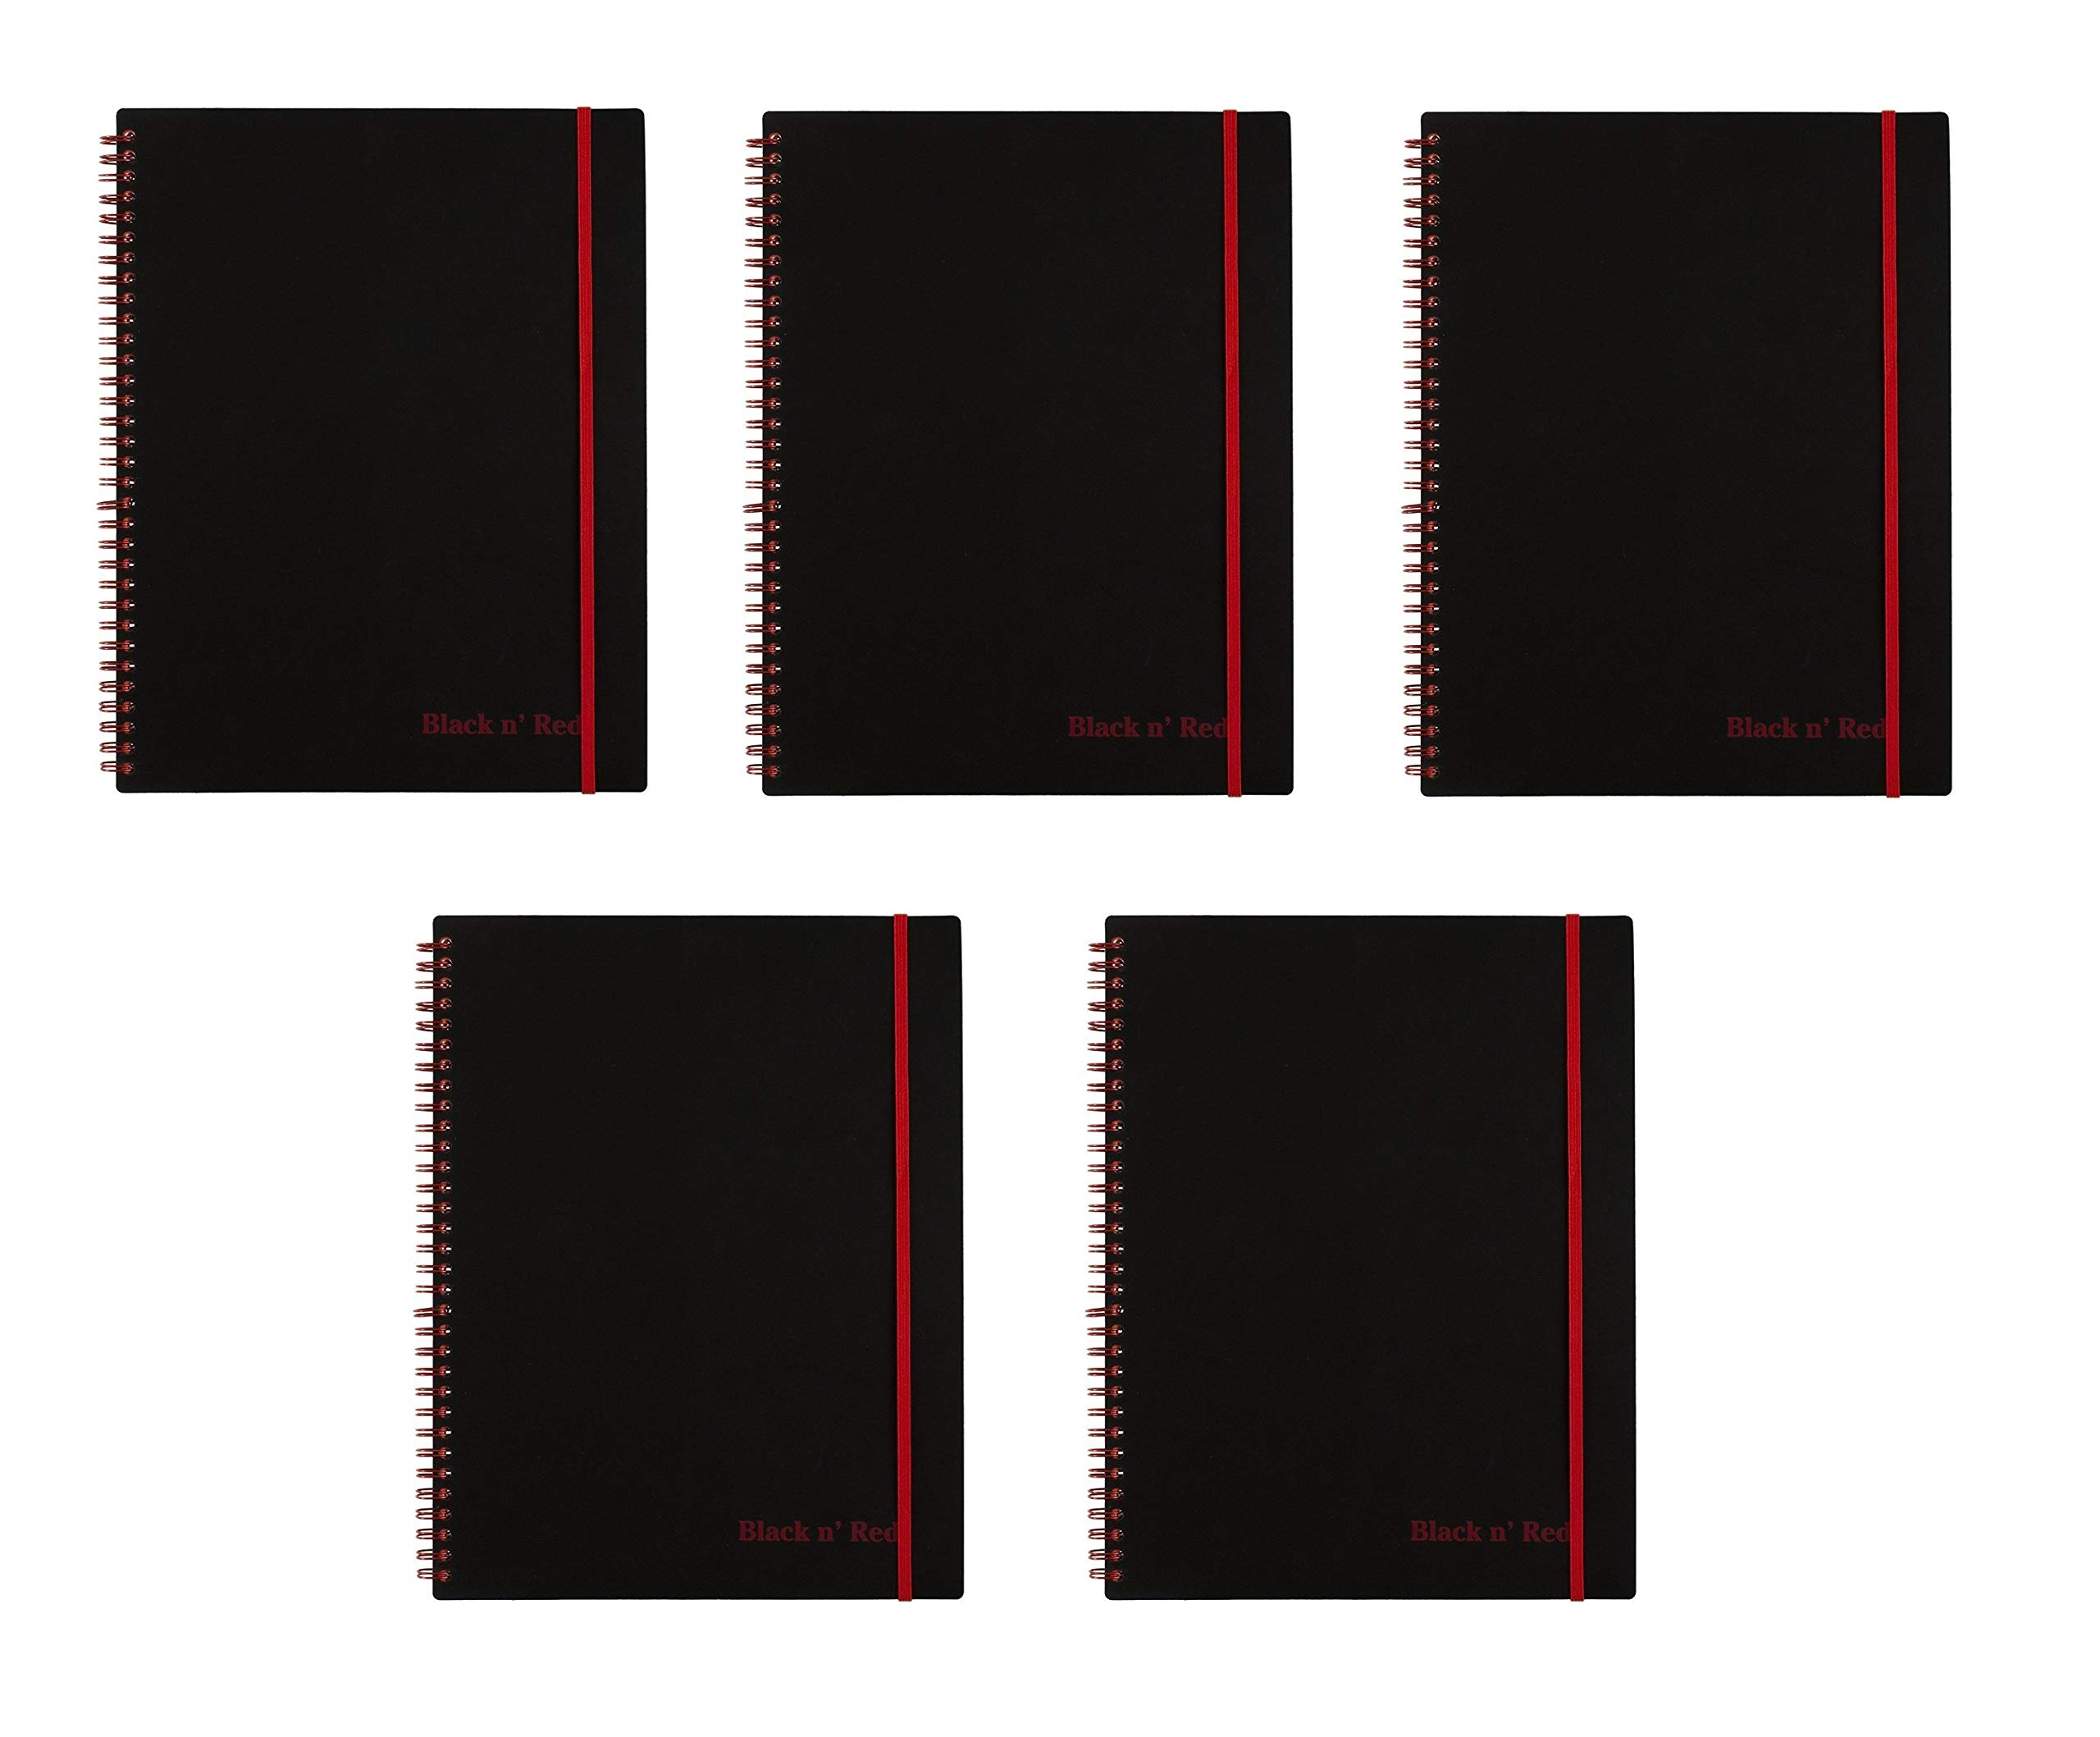 Black n' Red Twin Wire Poly Cover Notebook, 11'' x 8-1/2'', Black/Red, 70 Ruled Sheets. Sold as 5 Pack (K66652) by Black n' Red